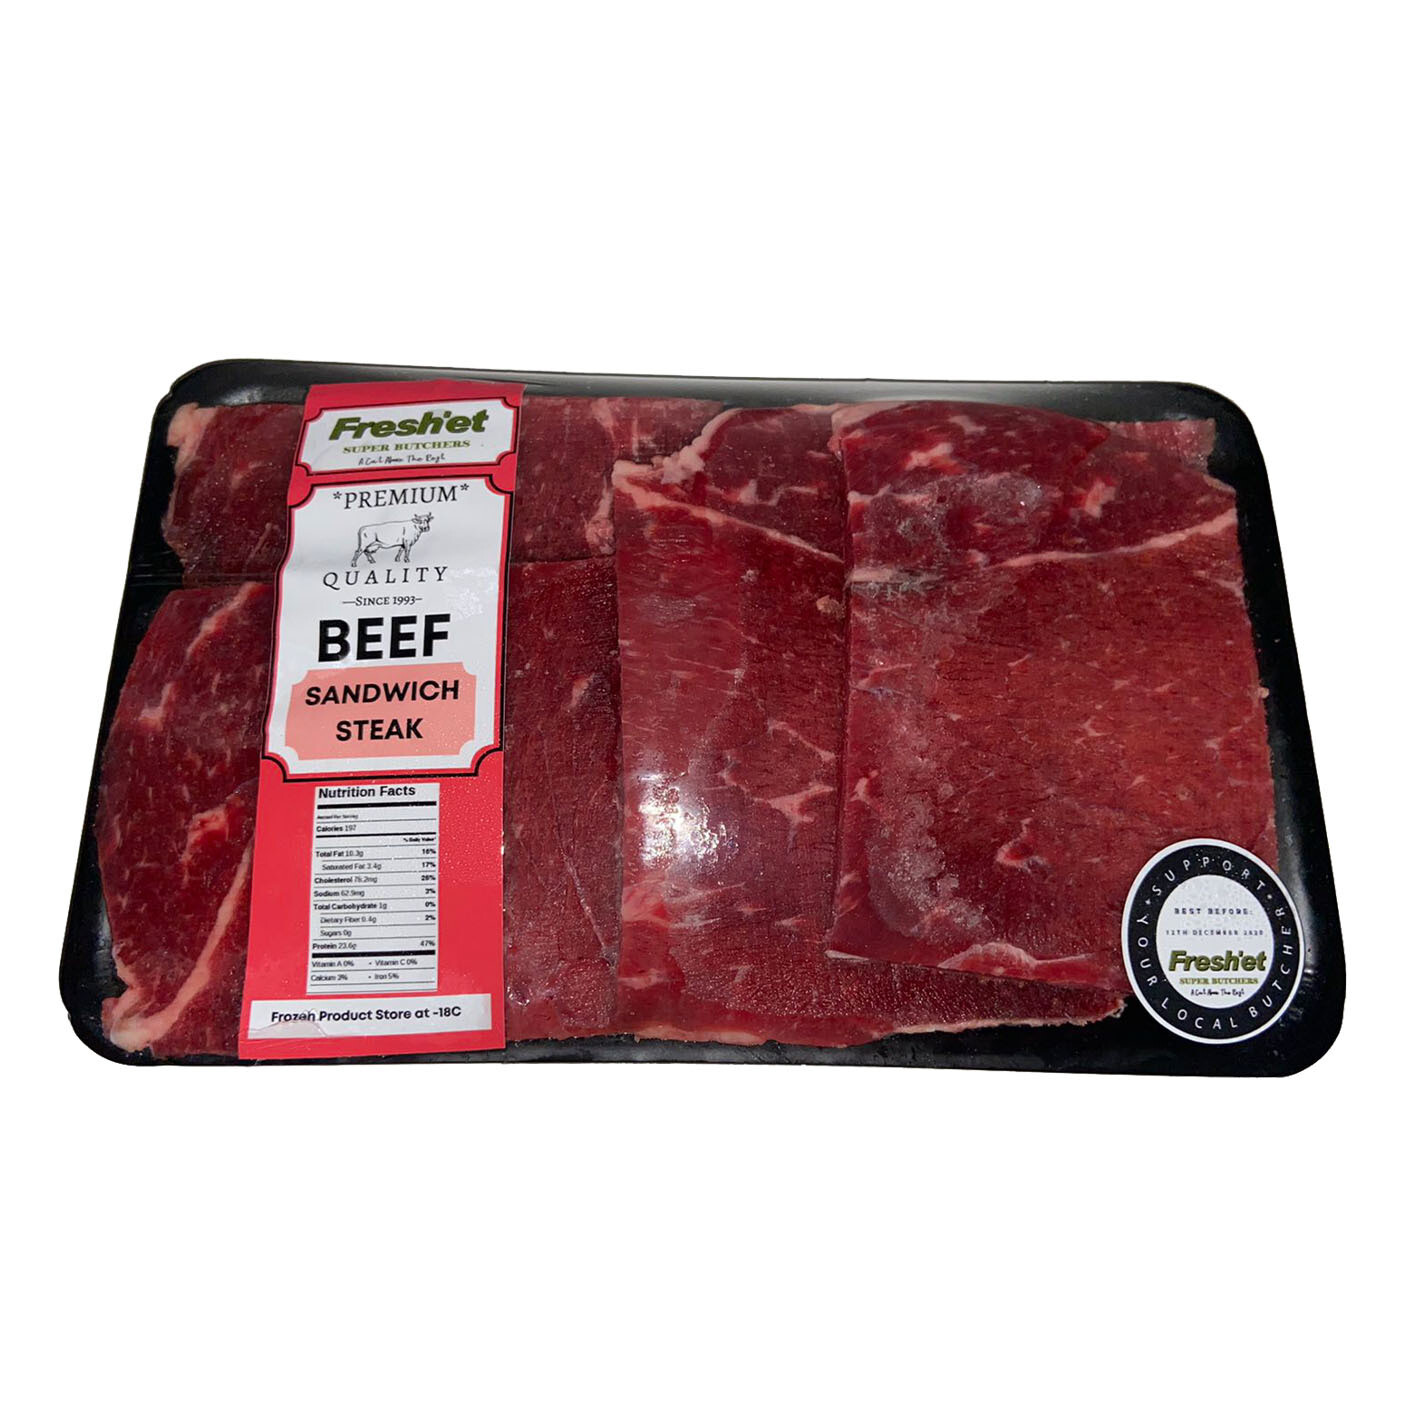 BEEF Sandwich Steak-1kg